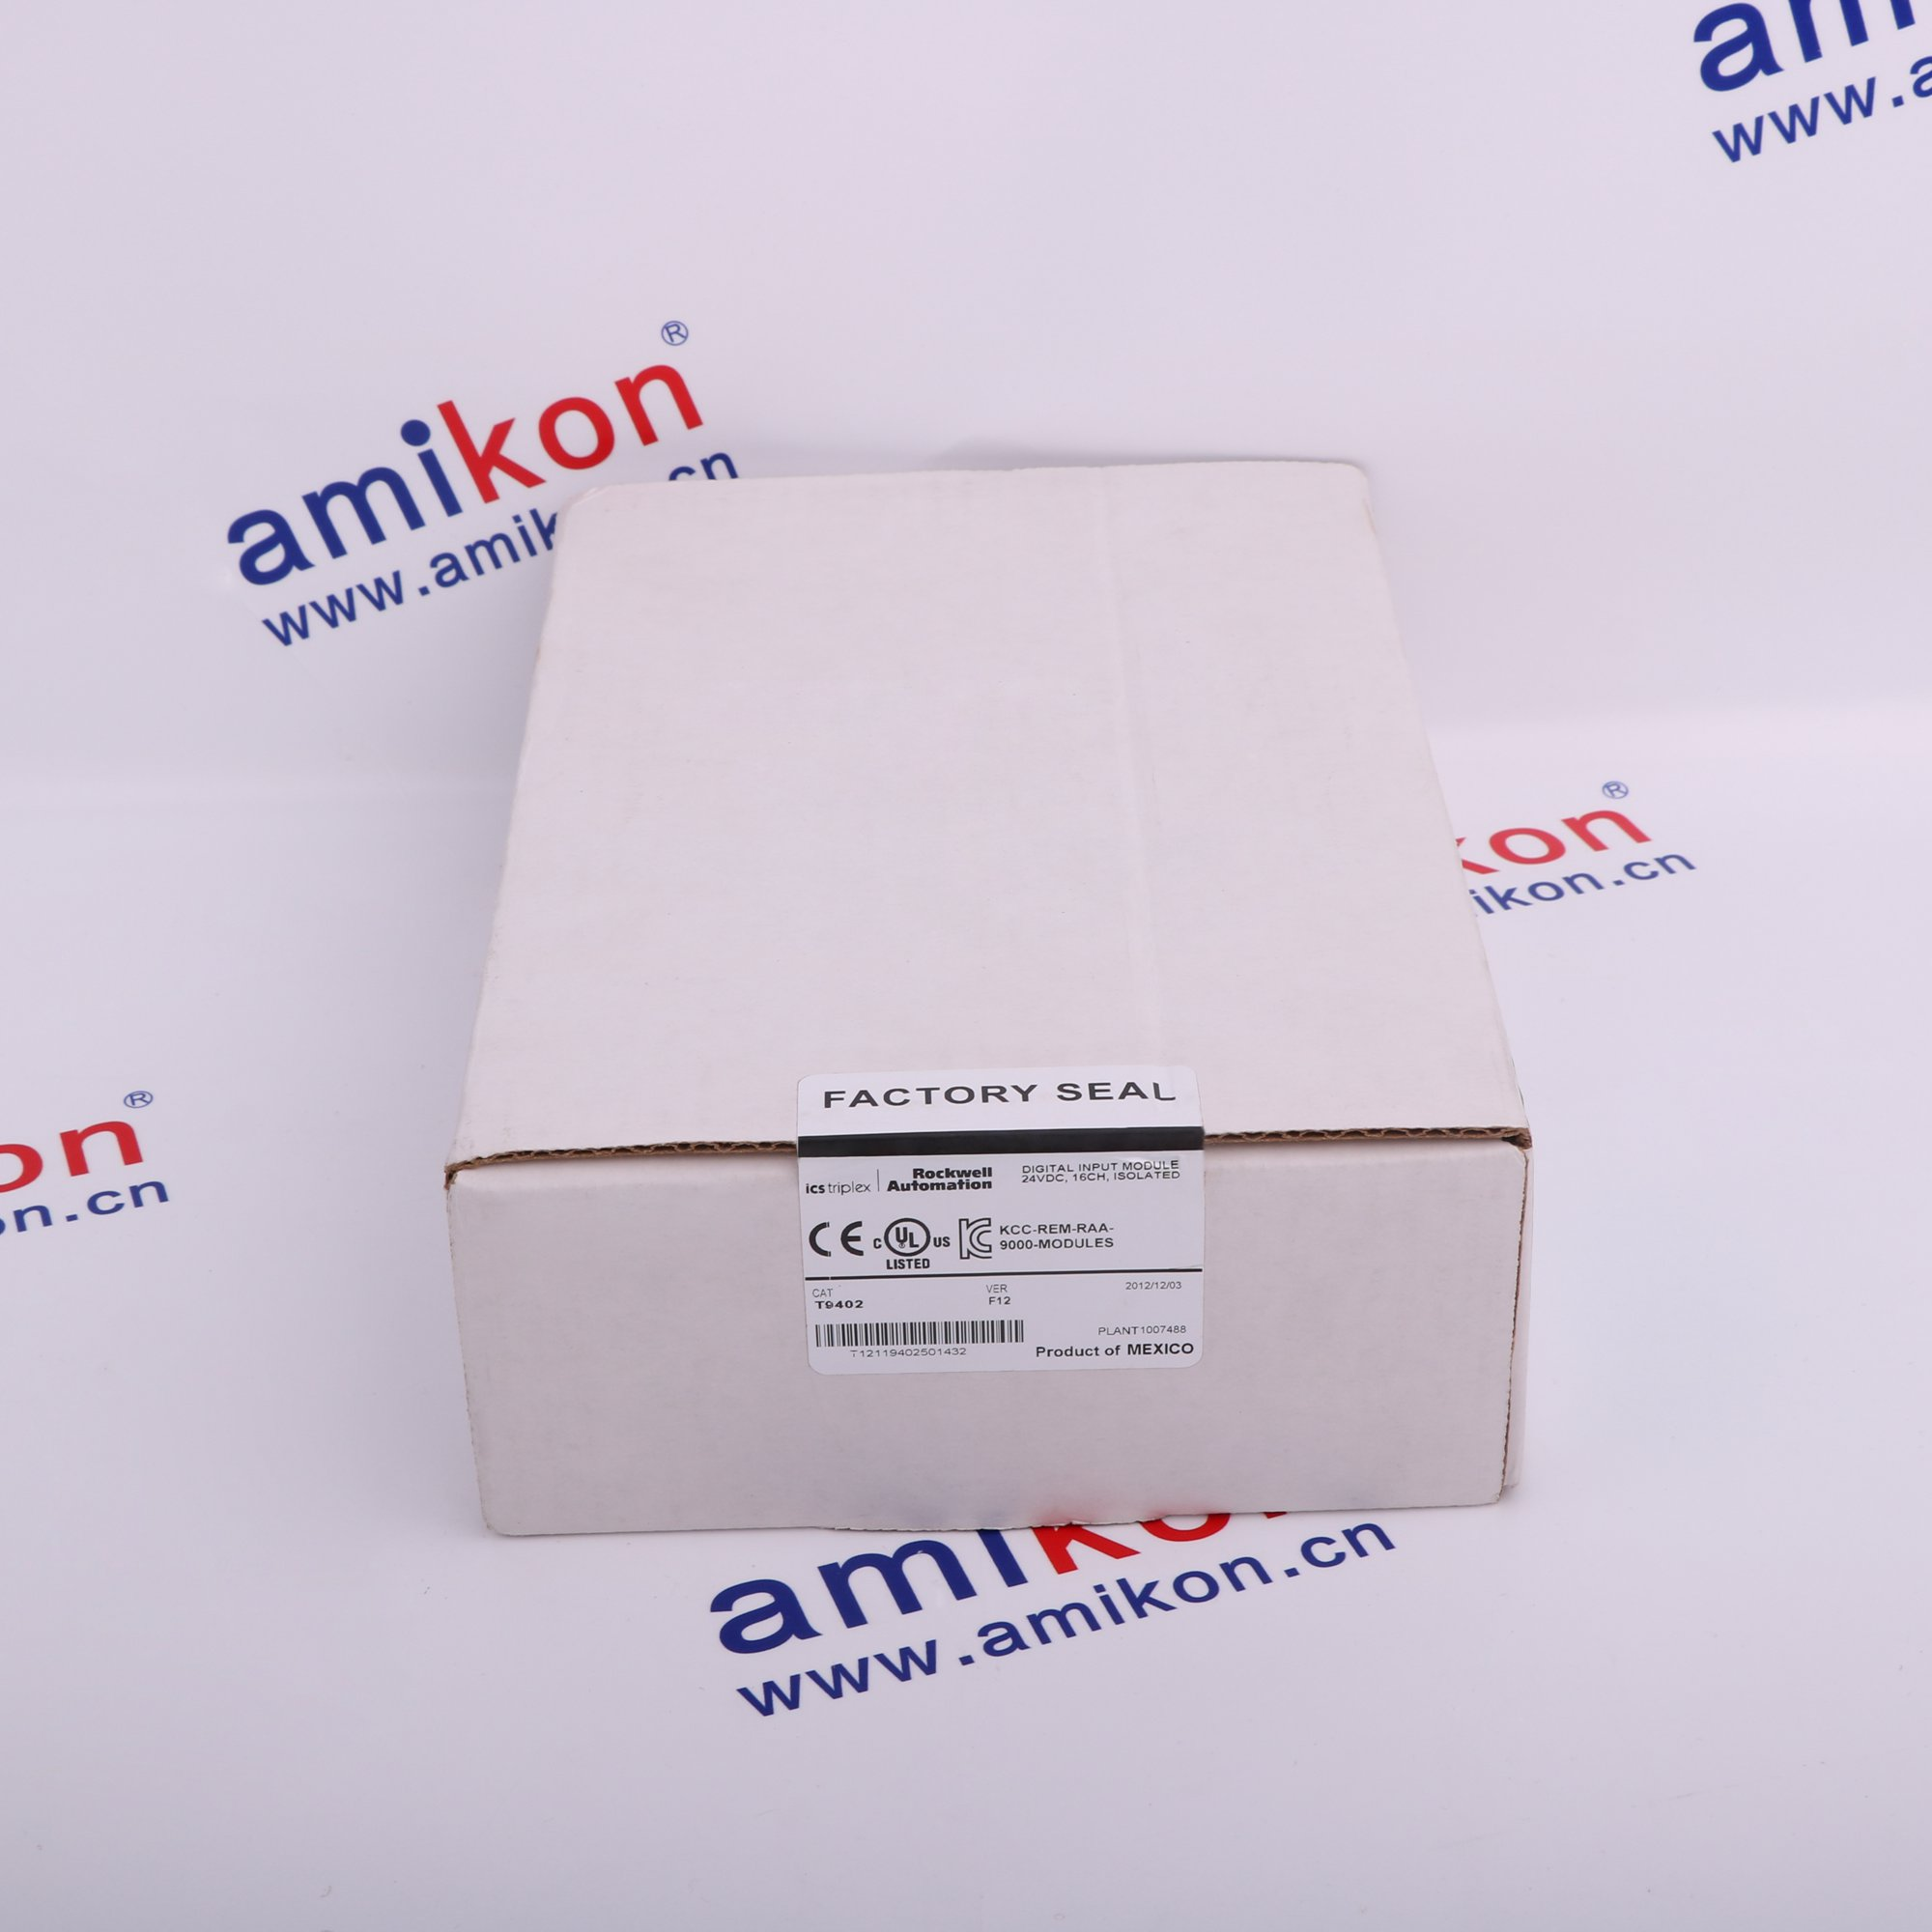 T8850 Trusted 40 channel Analogue or Digital Output FTA